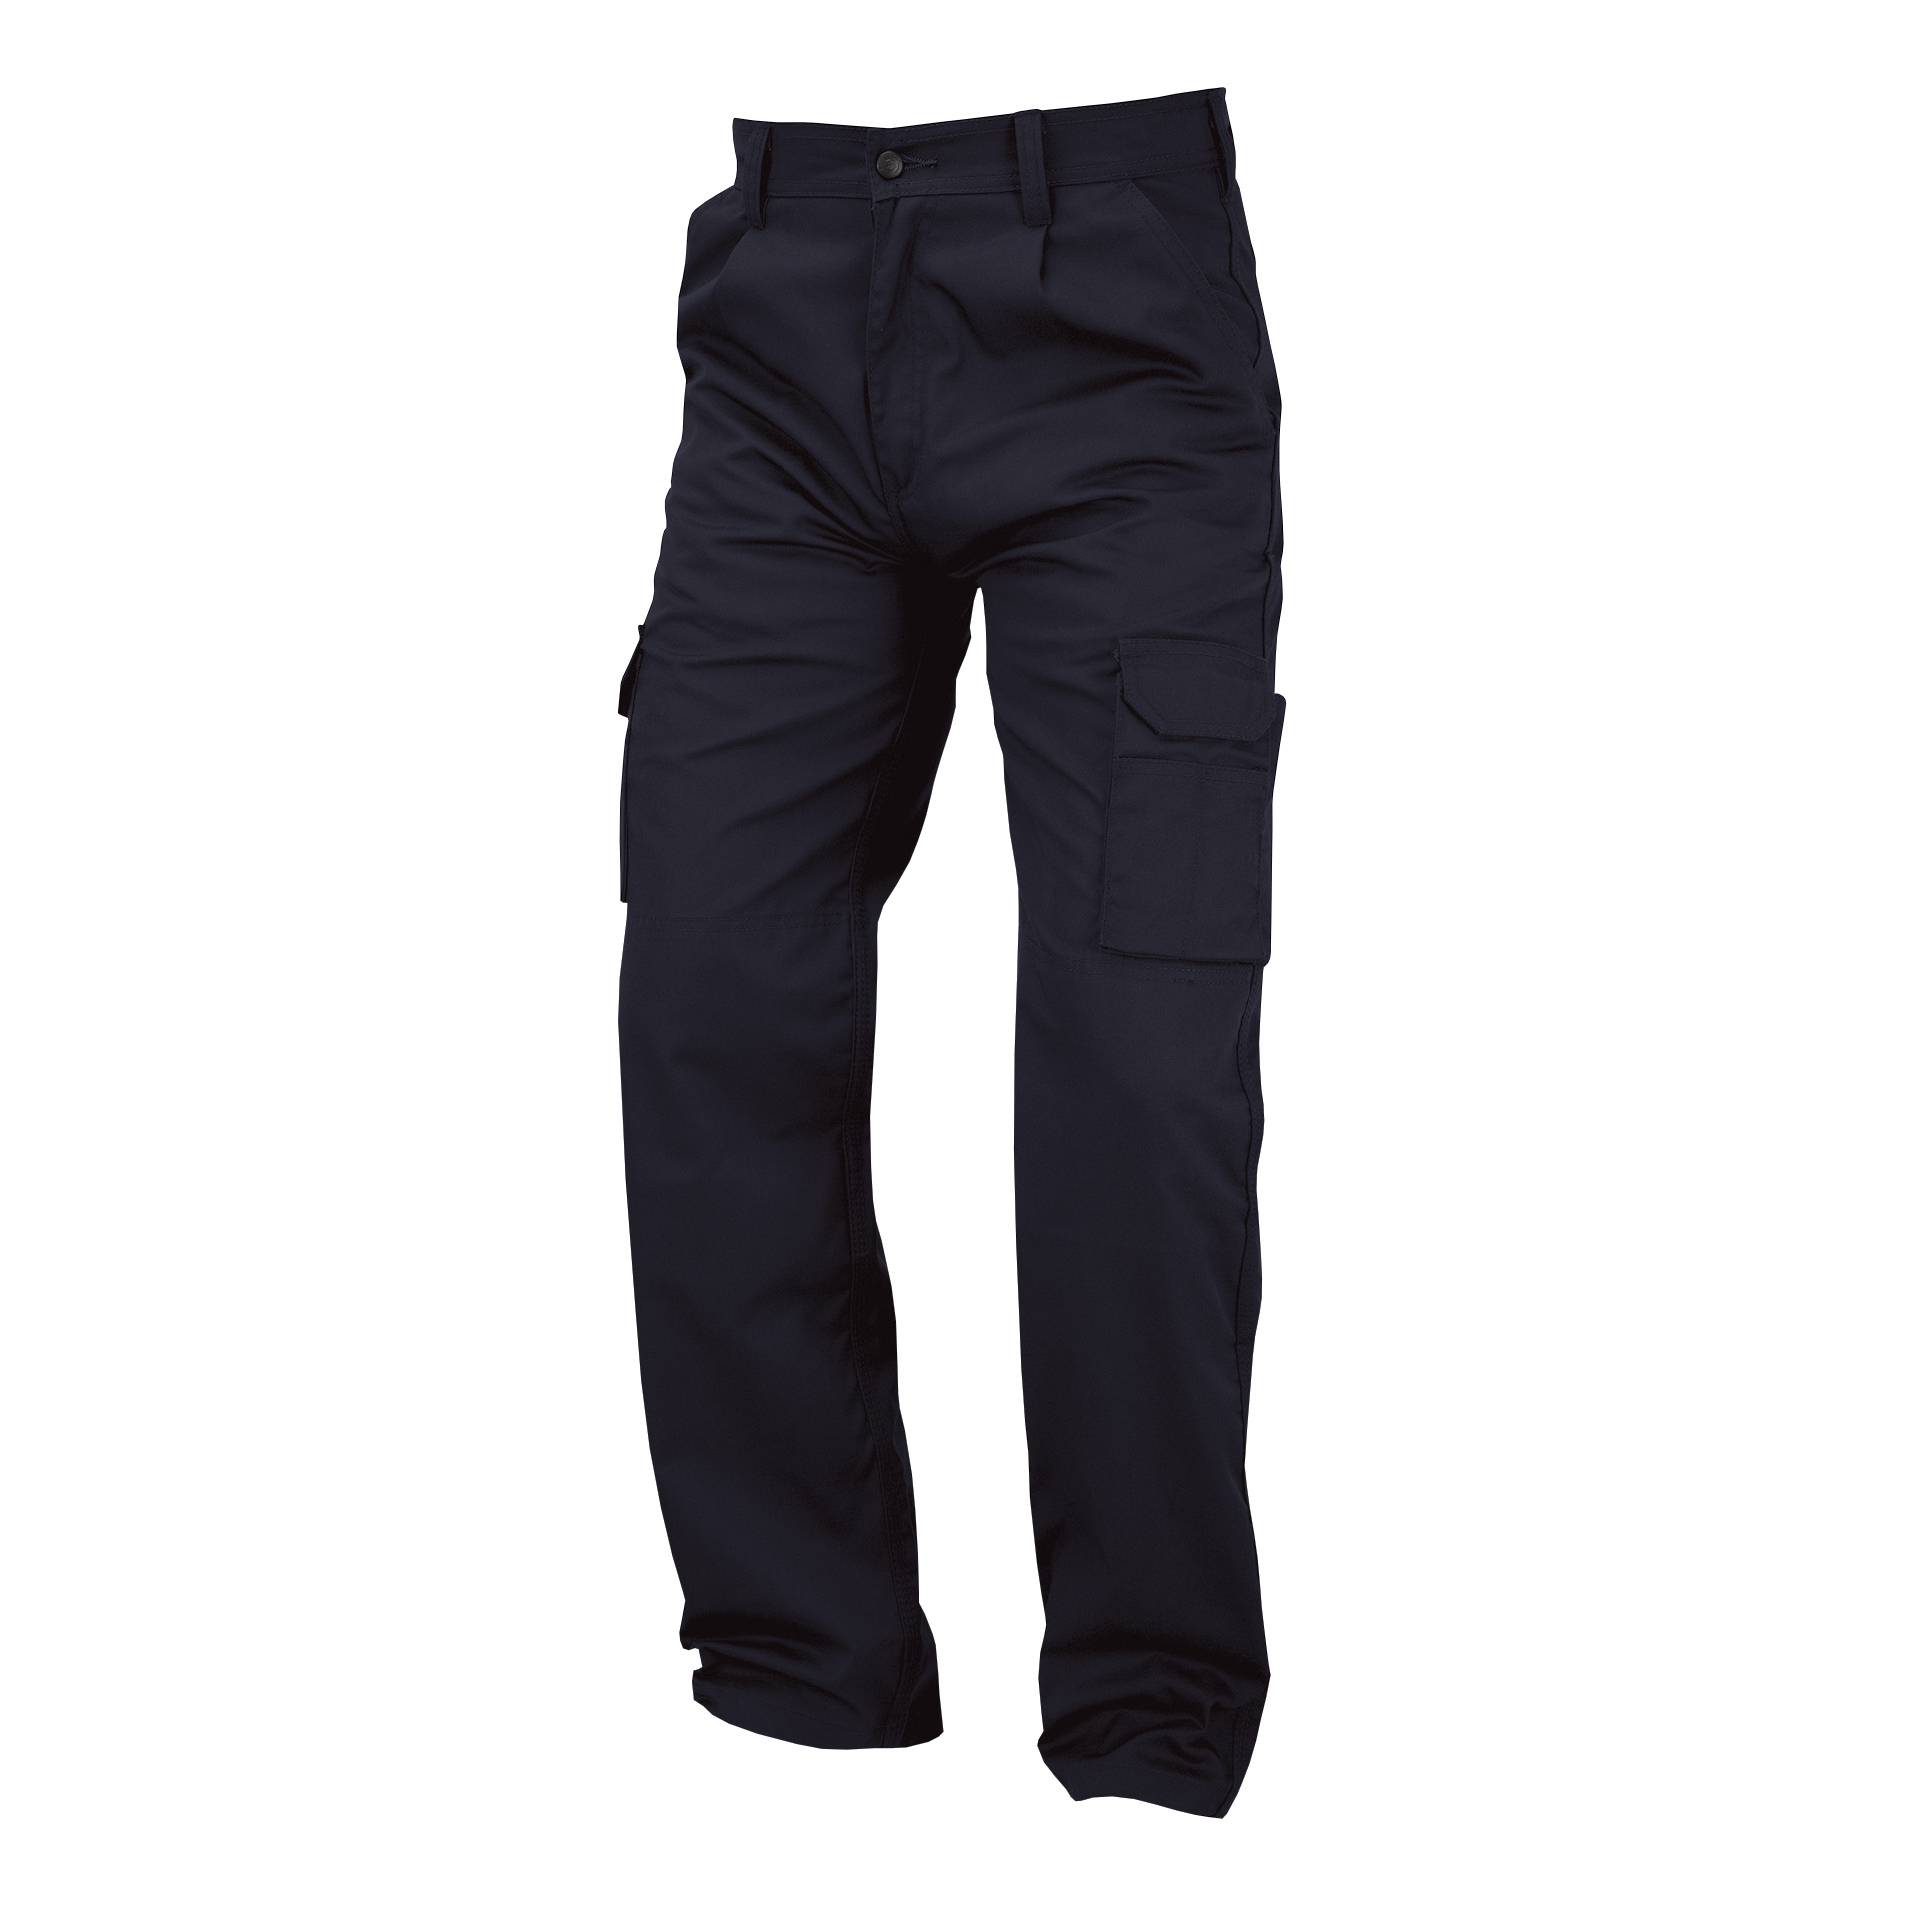 Combat / Cargo Combat Trousers Polycotton with Pockets 34in Long Navy Blue Ref PCTHWN34T *1-3 Days Lead Time*